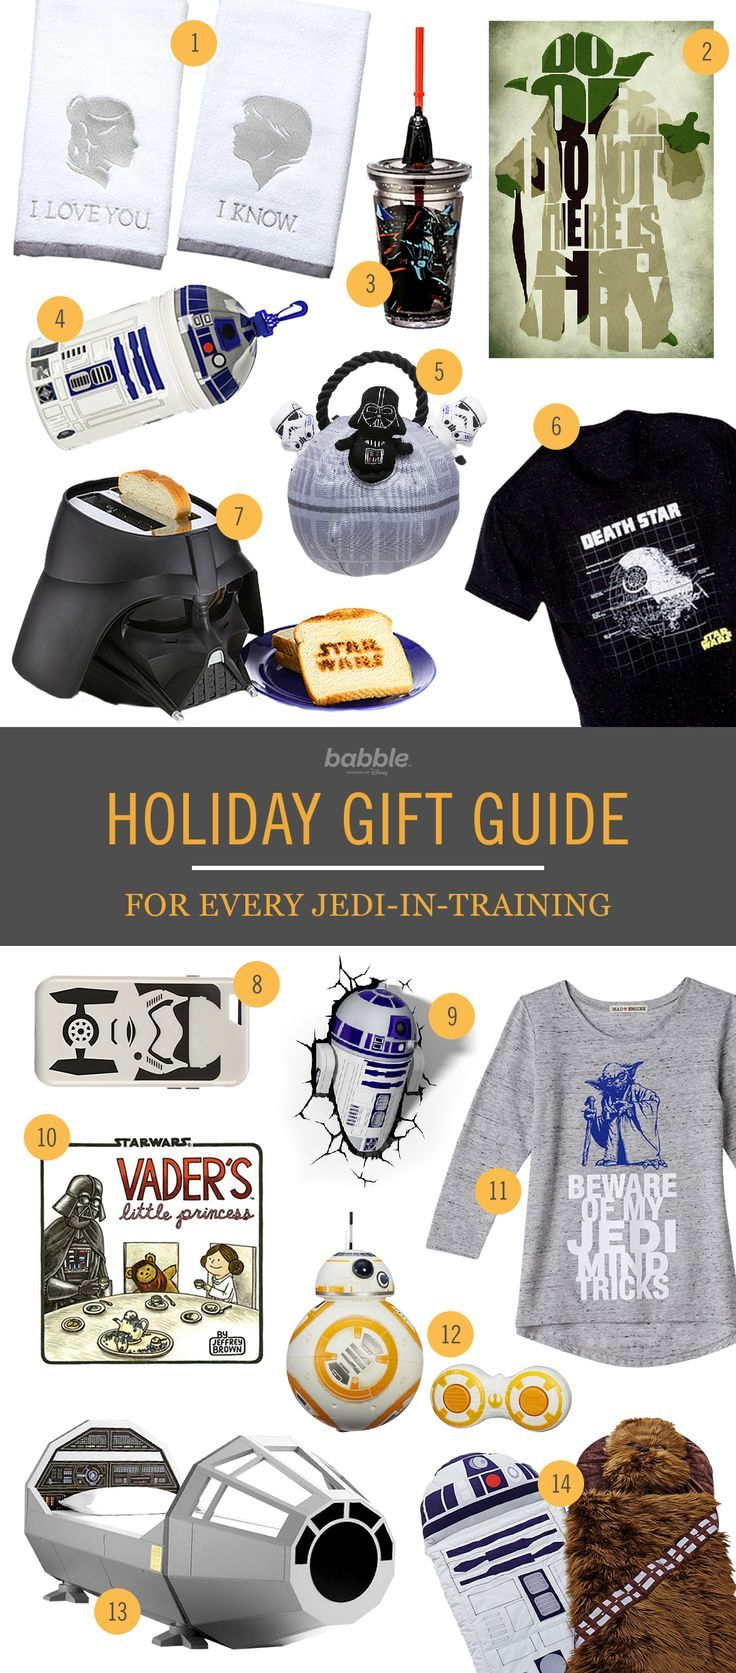 If there's one thing Star Wars fans are into it's showing off their fandom — and using Jedi mi...